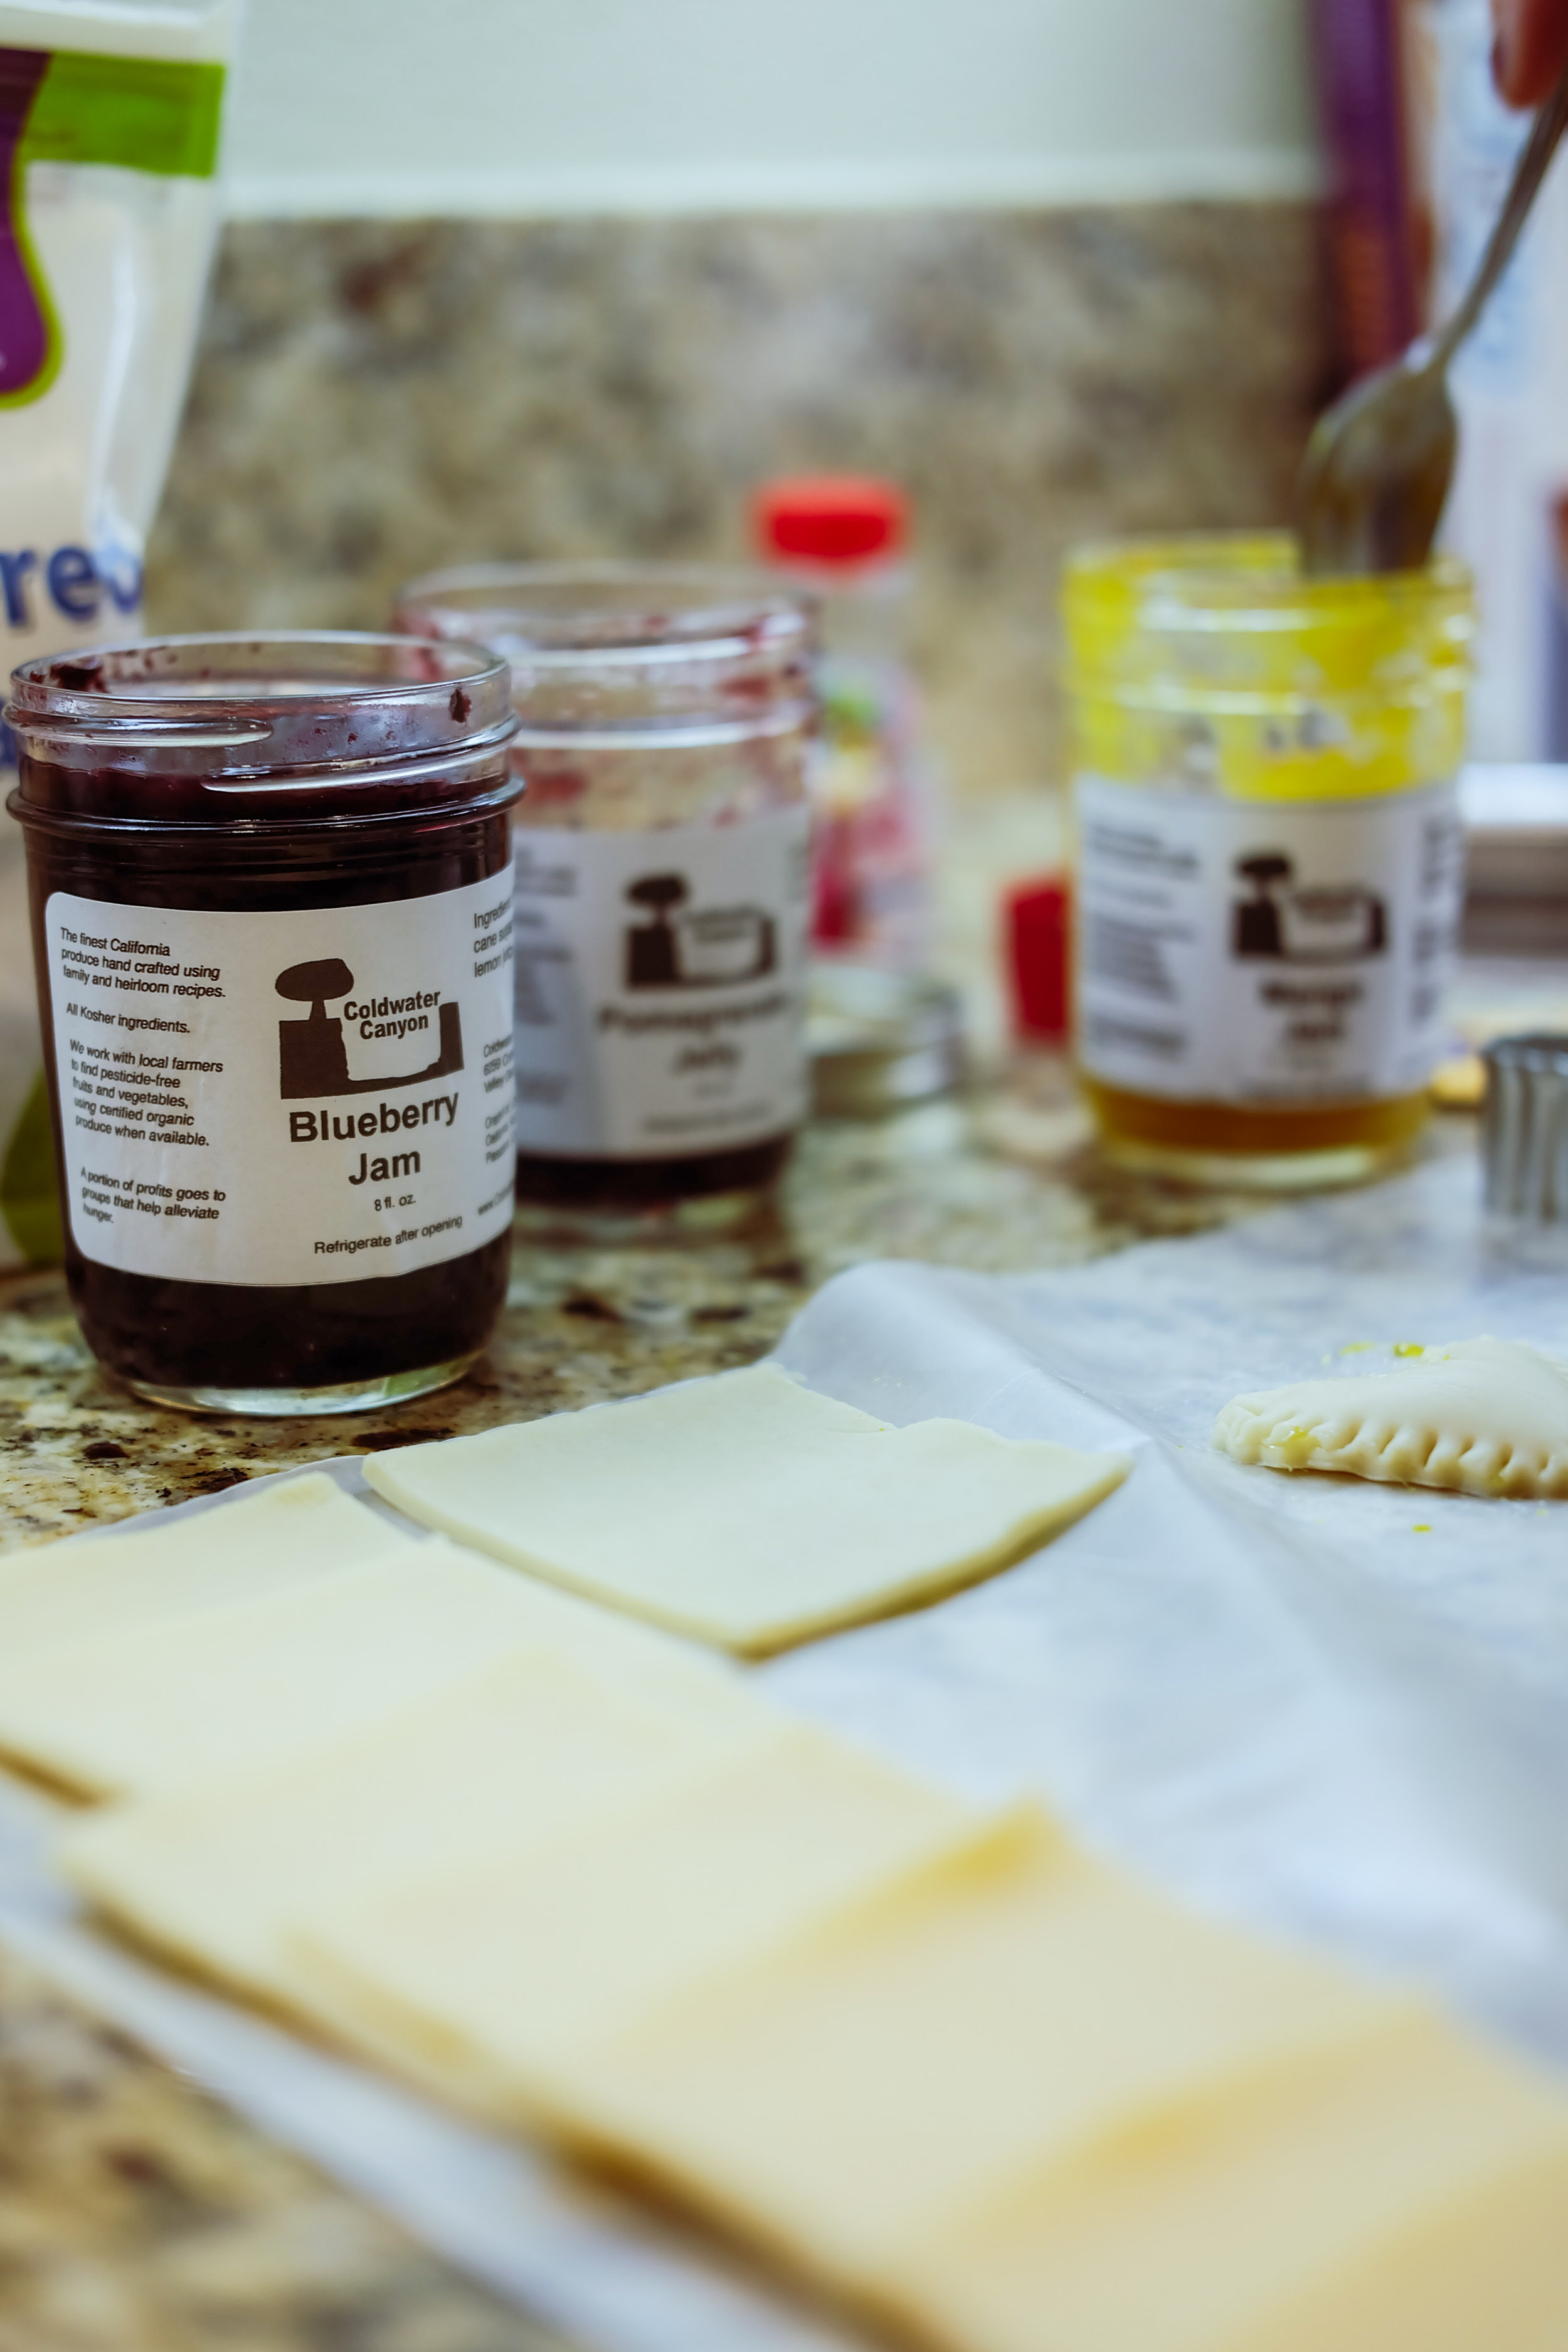 These are the 3 flavors of jams we chose!